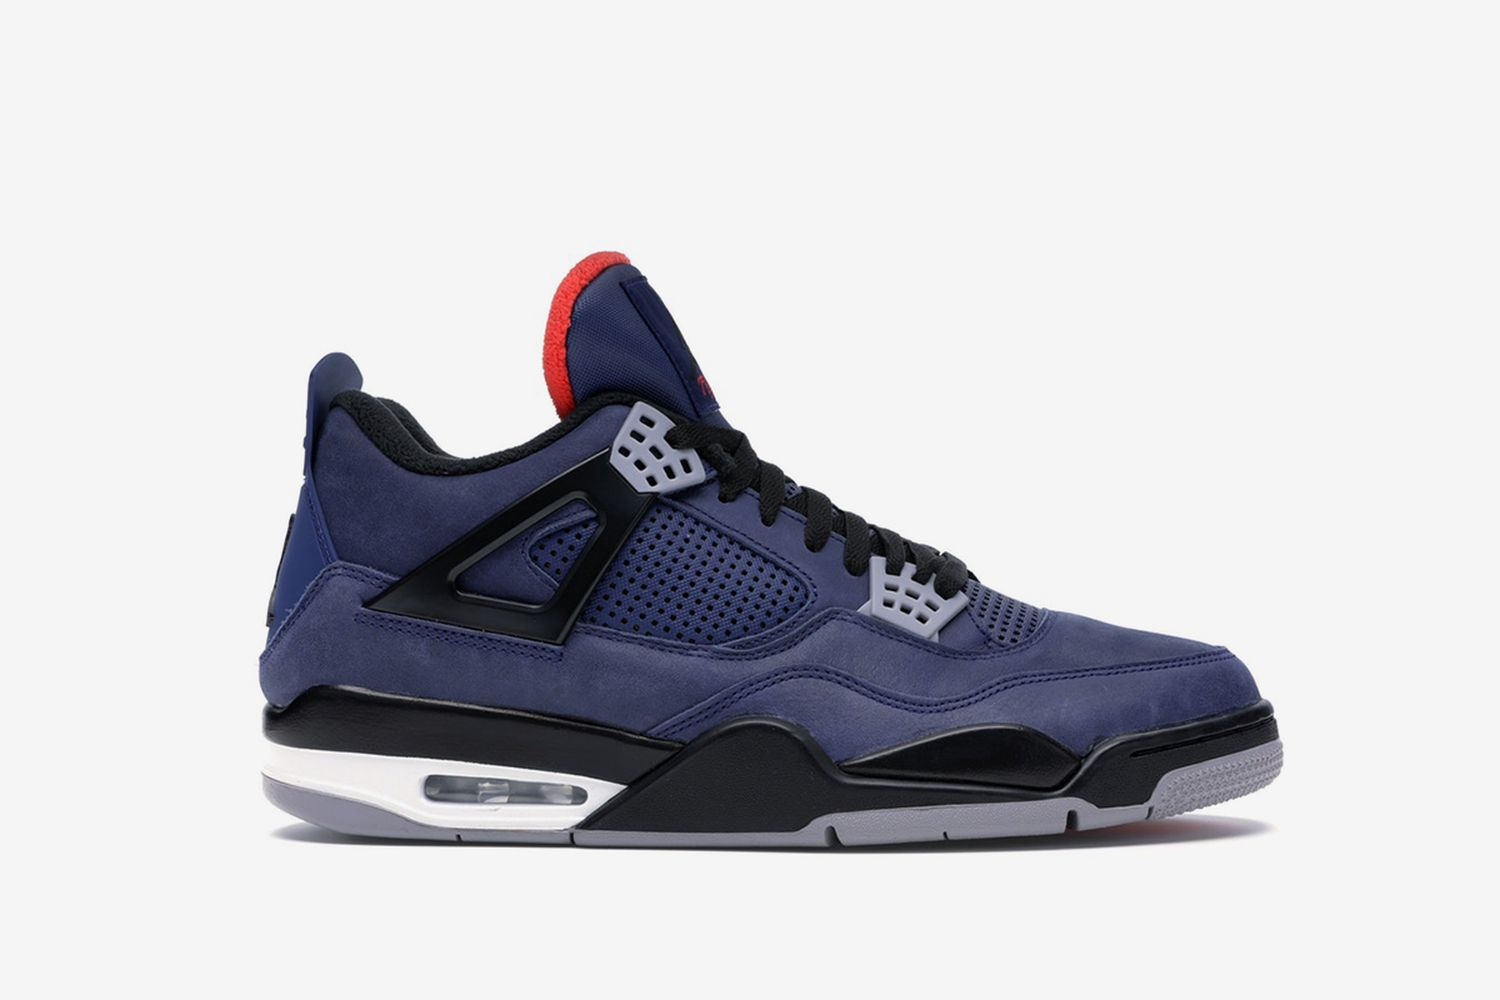 Jordan 4 Retro Winterized